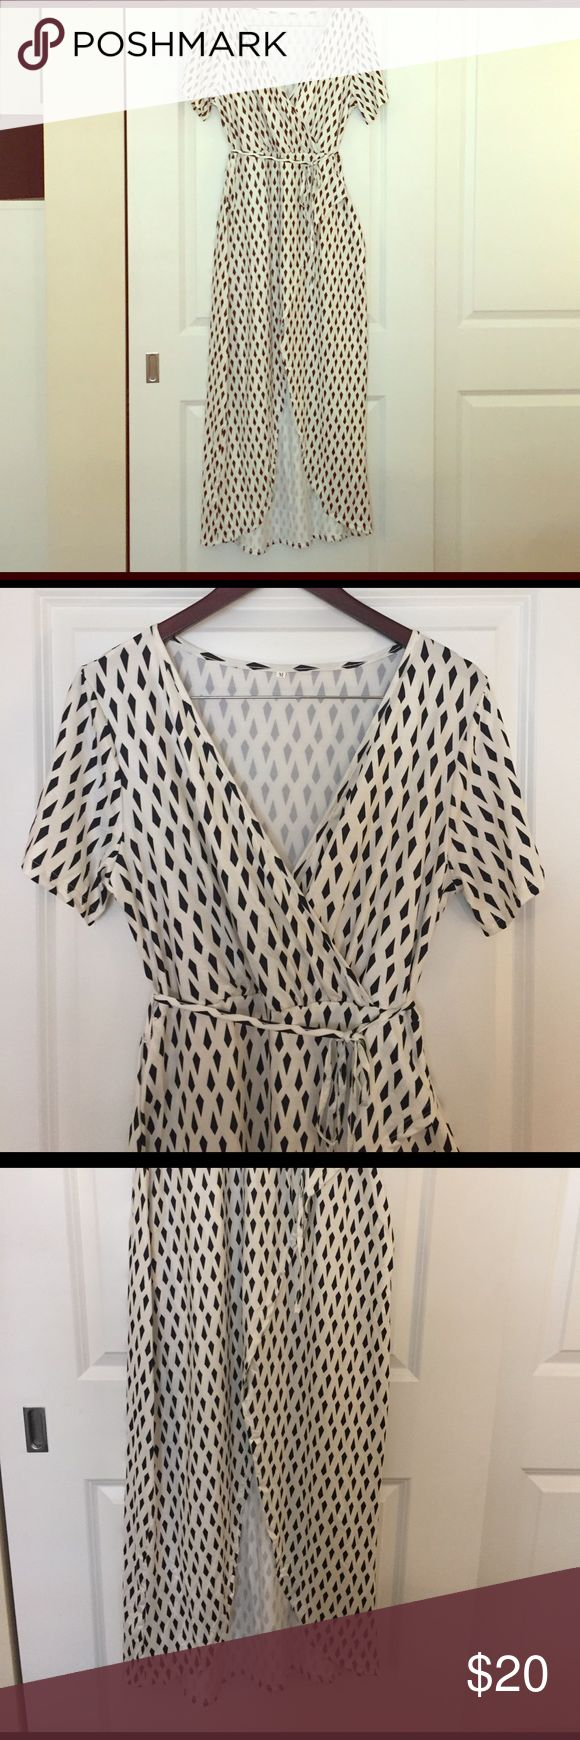 Black and white maxi dress Smooth and sleek black and white patterned maxi dress. New without tags. Spandex with large slit in front. Dresses Maxi